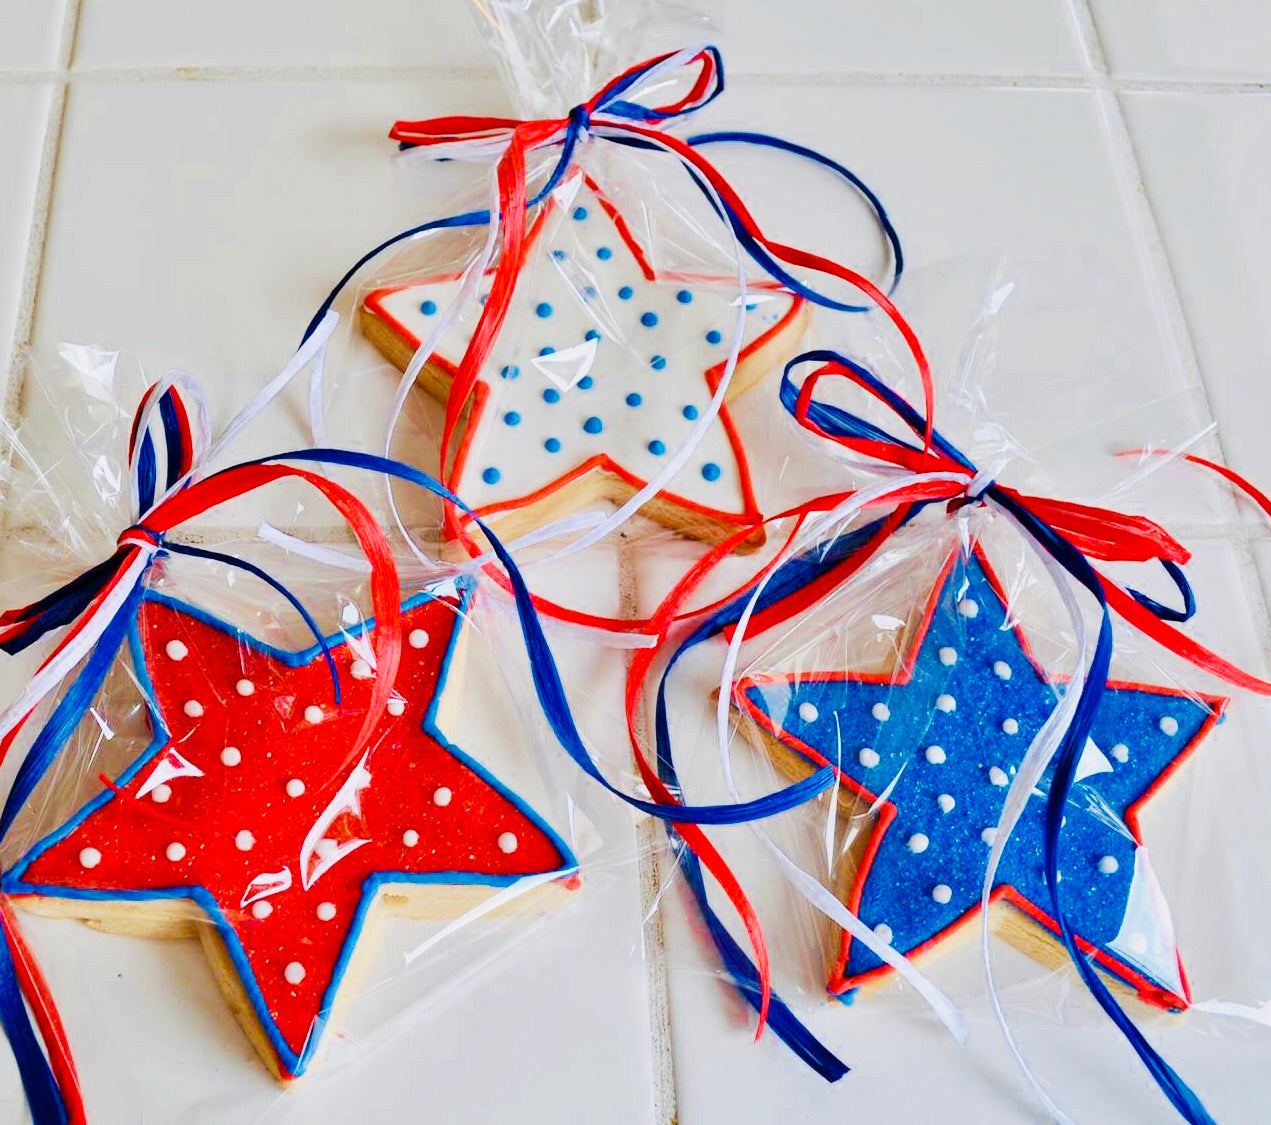 LABOR DAY STAR COOKIE FAVORS